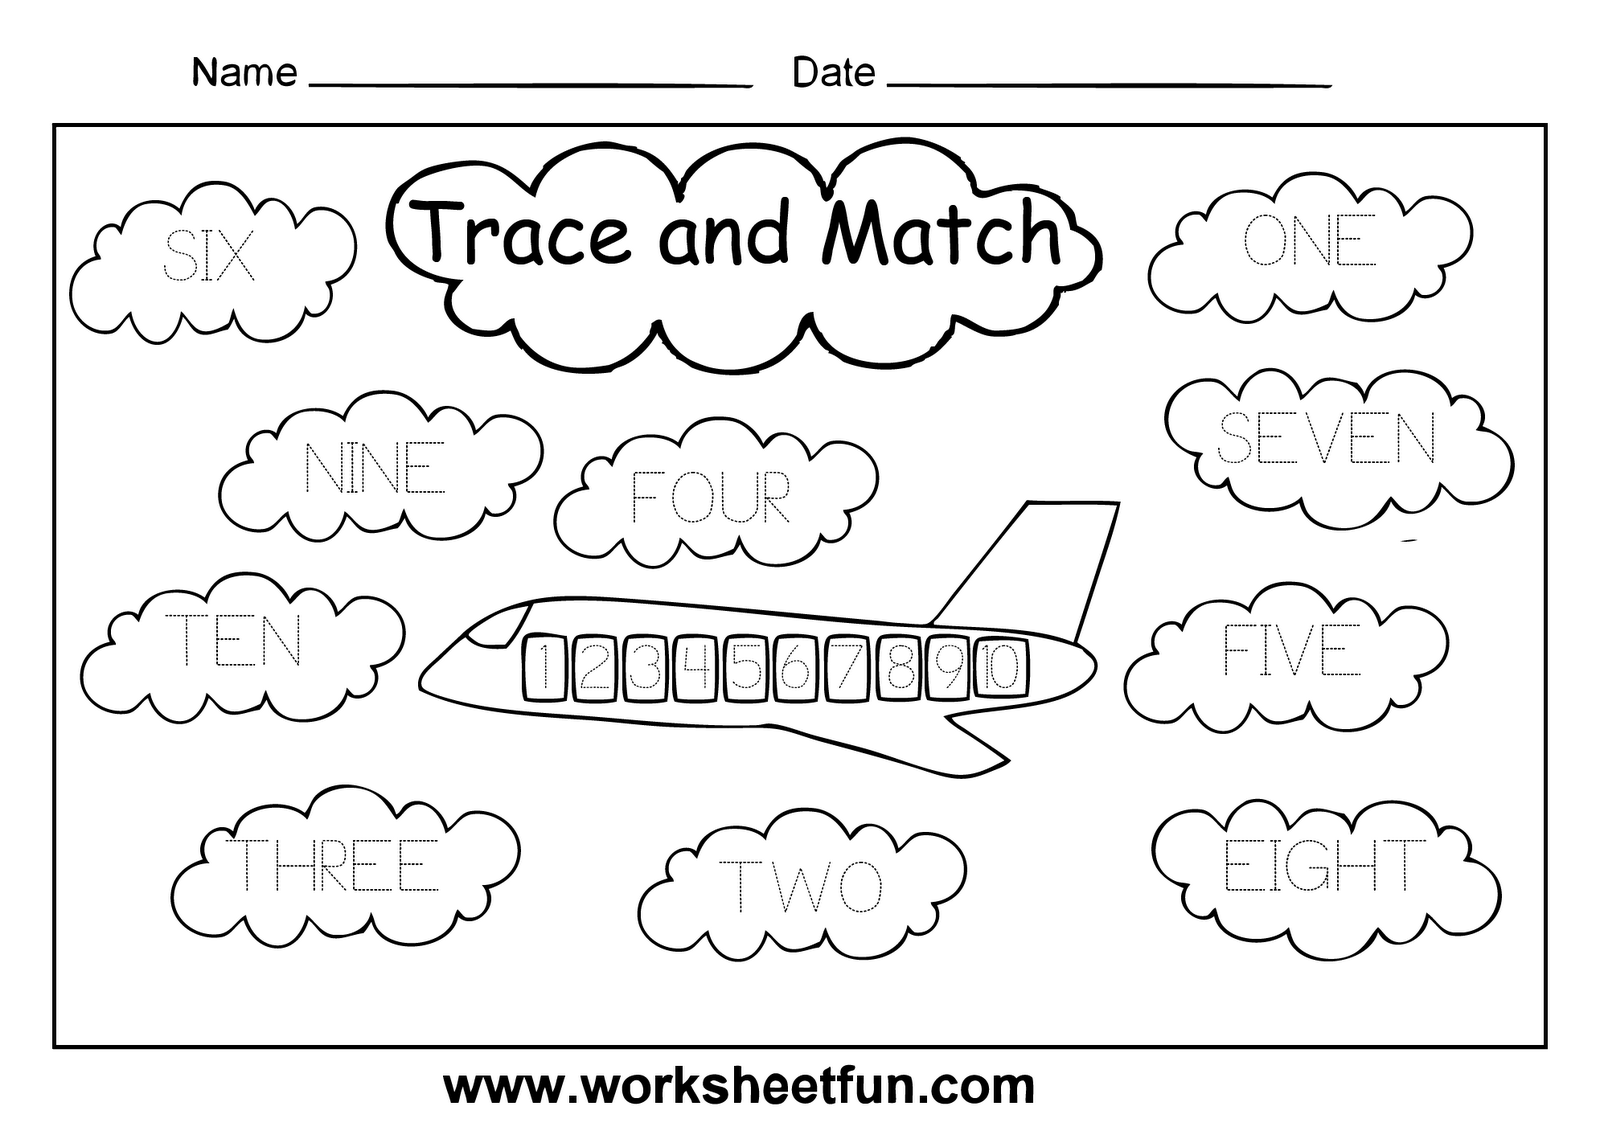 Weirdmailus  Pleasing Numbers Worksheet    Narrativamente With Outstanding Initial Sound Worksheet Besides Electronic Configuration Worksheets Furthermore Describing Words Worksheets With Beauteous Subtraction Worksheets With Regrouping For Nd Grade Also Constructing Polygons Worksheet In Addition Division Fact Practice Worksheets And Nd Grade Fractions Worksheet As Well As Playground Safety Worksheets Additionally Bitesize Worksheets From Narrativamentecom With Weirdmailus  Outstanding Numbers Worksheet    Narrativamente With Beauteous Initial Sound Worksheet Besides Electronic Configuration Worksheets Furthermore Describing Words Worksheets And Pleasing Subtraction Worksheets With Regrouping For Nd Grade Also Constructing Polygons Worksheet In Addition Division Fact Practice Worksheets From Narrativamentecom